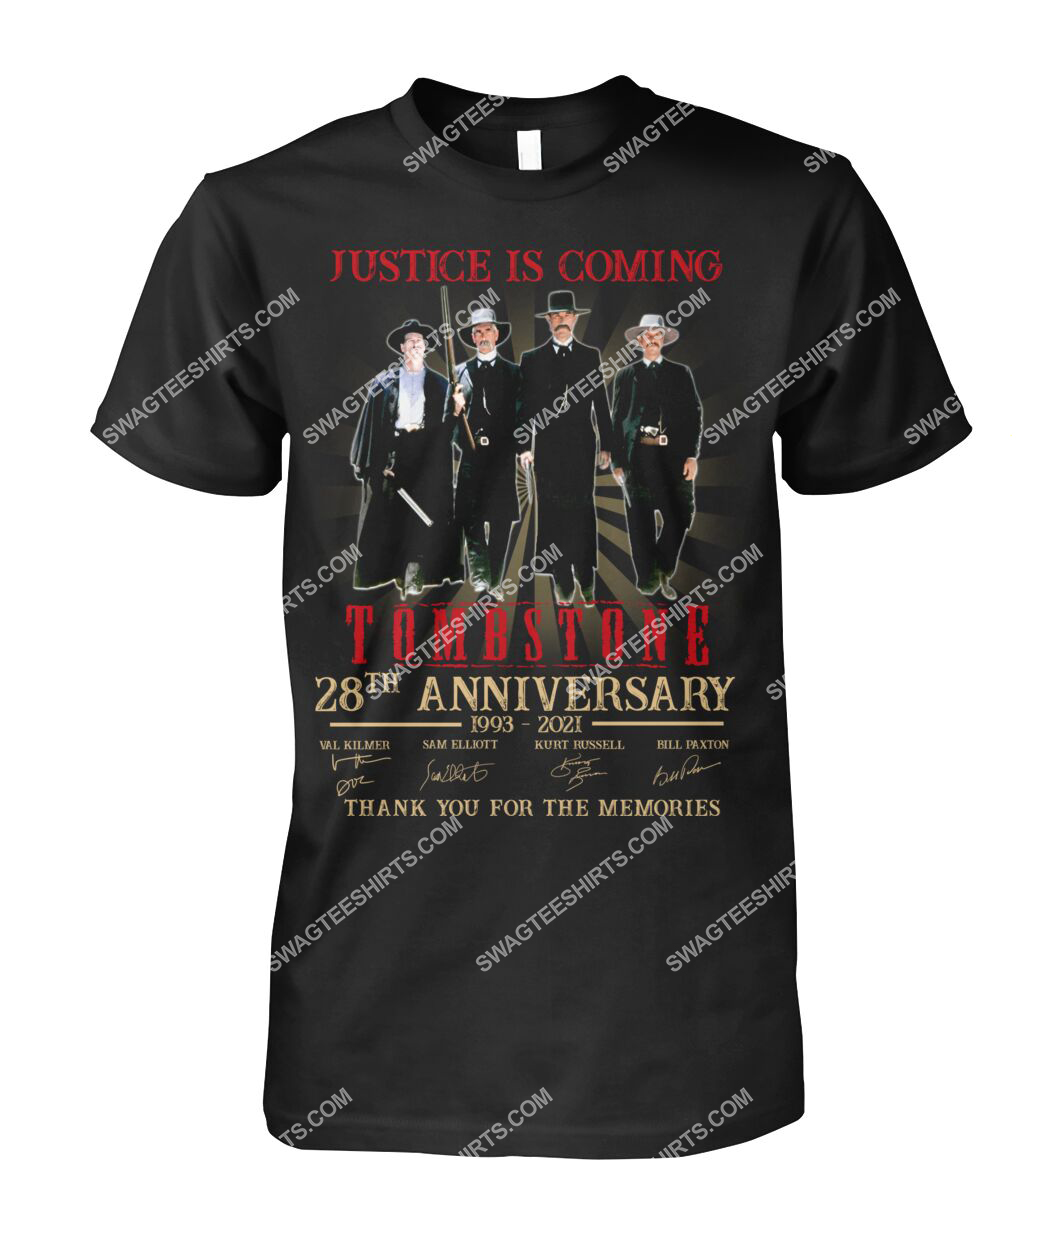 justice is coming tombstone 28th anniversary thank you for the memories tshirt 1